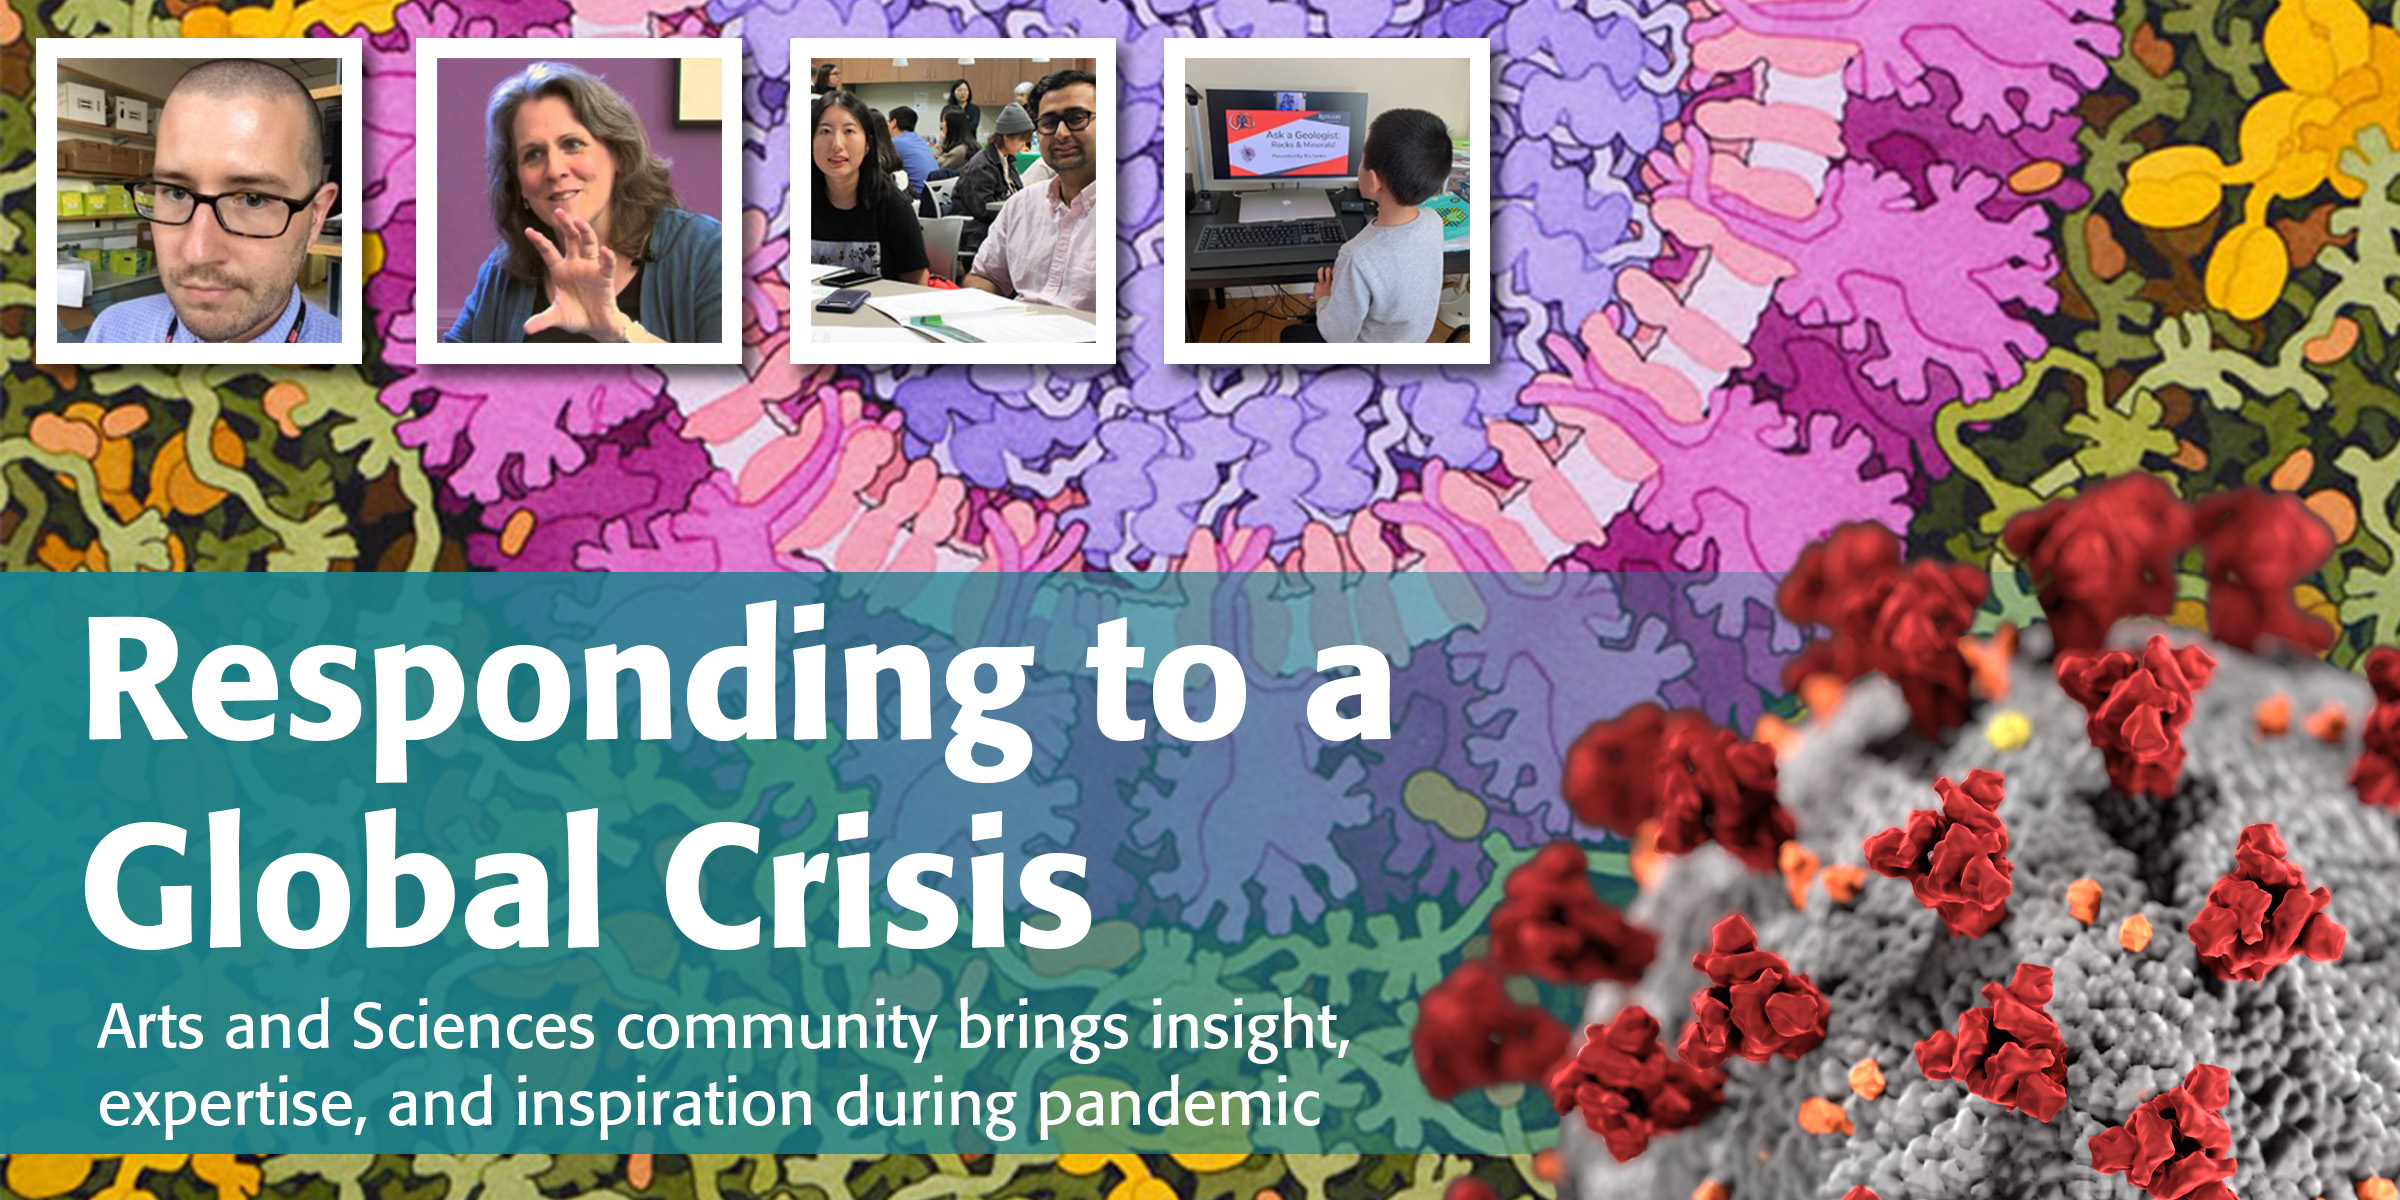 Responding to a Global Crisis: Arts and Sciences community brings insight, expertise, and inspiration during pandemic